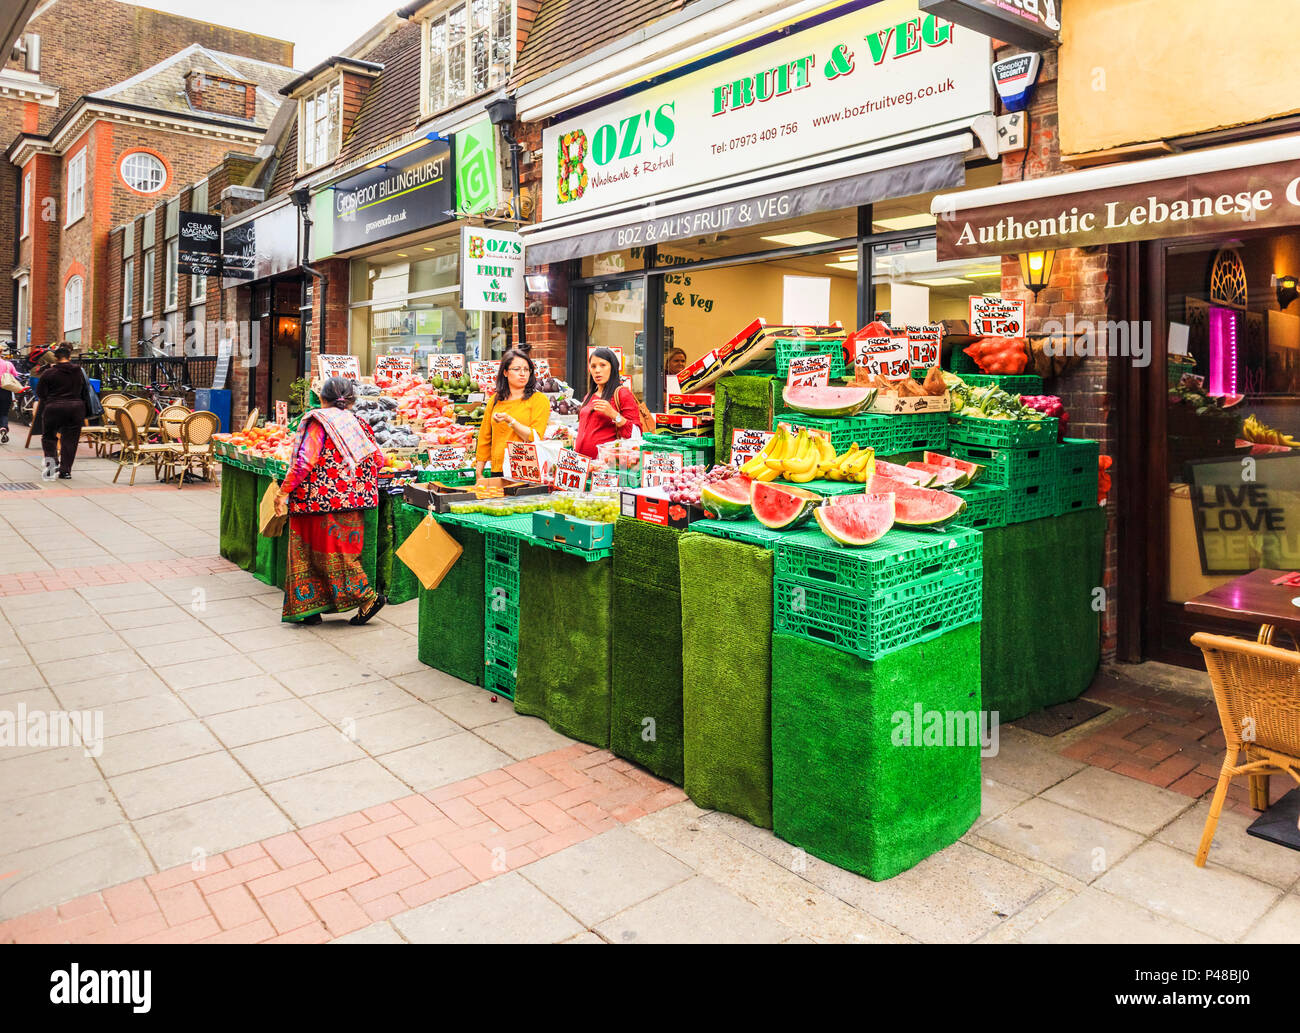 Fruit and vegetables display outside Boz's, a traditional greengrocer's shop in Church Path, Woking, a town in Surrey, southeast England, UK - Stock Image